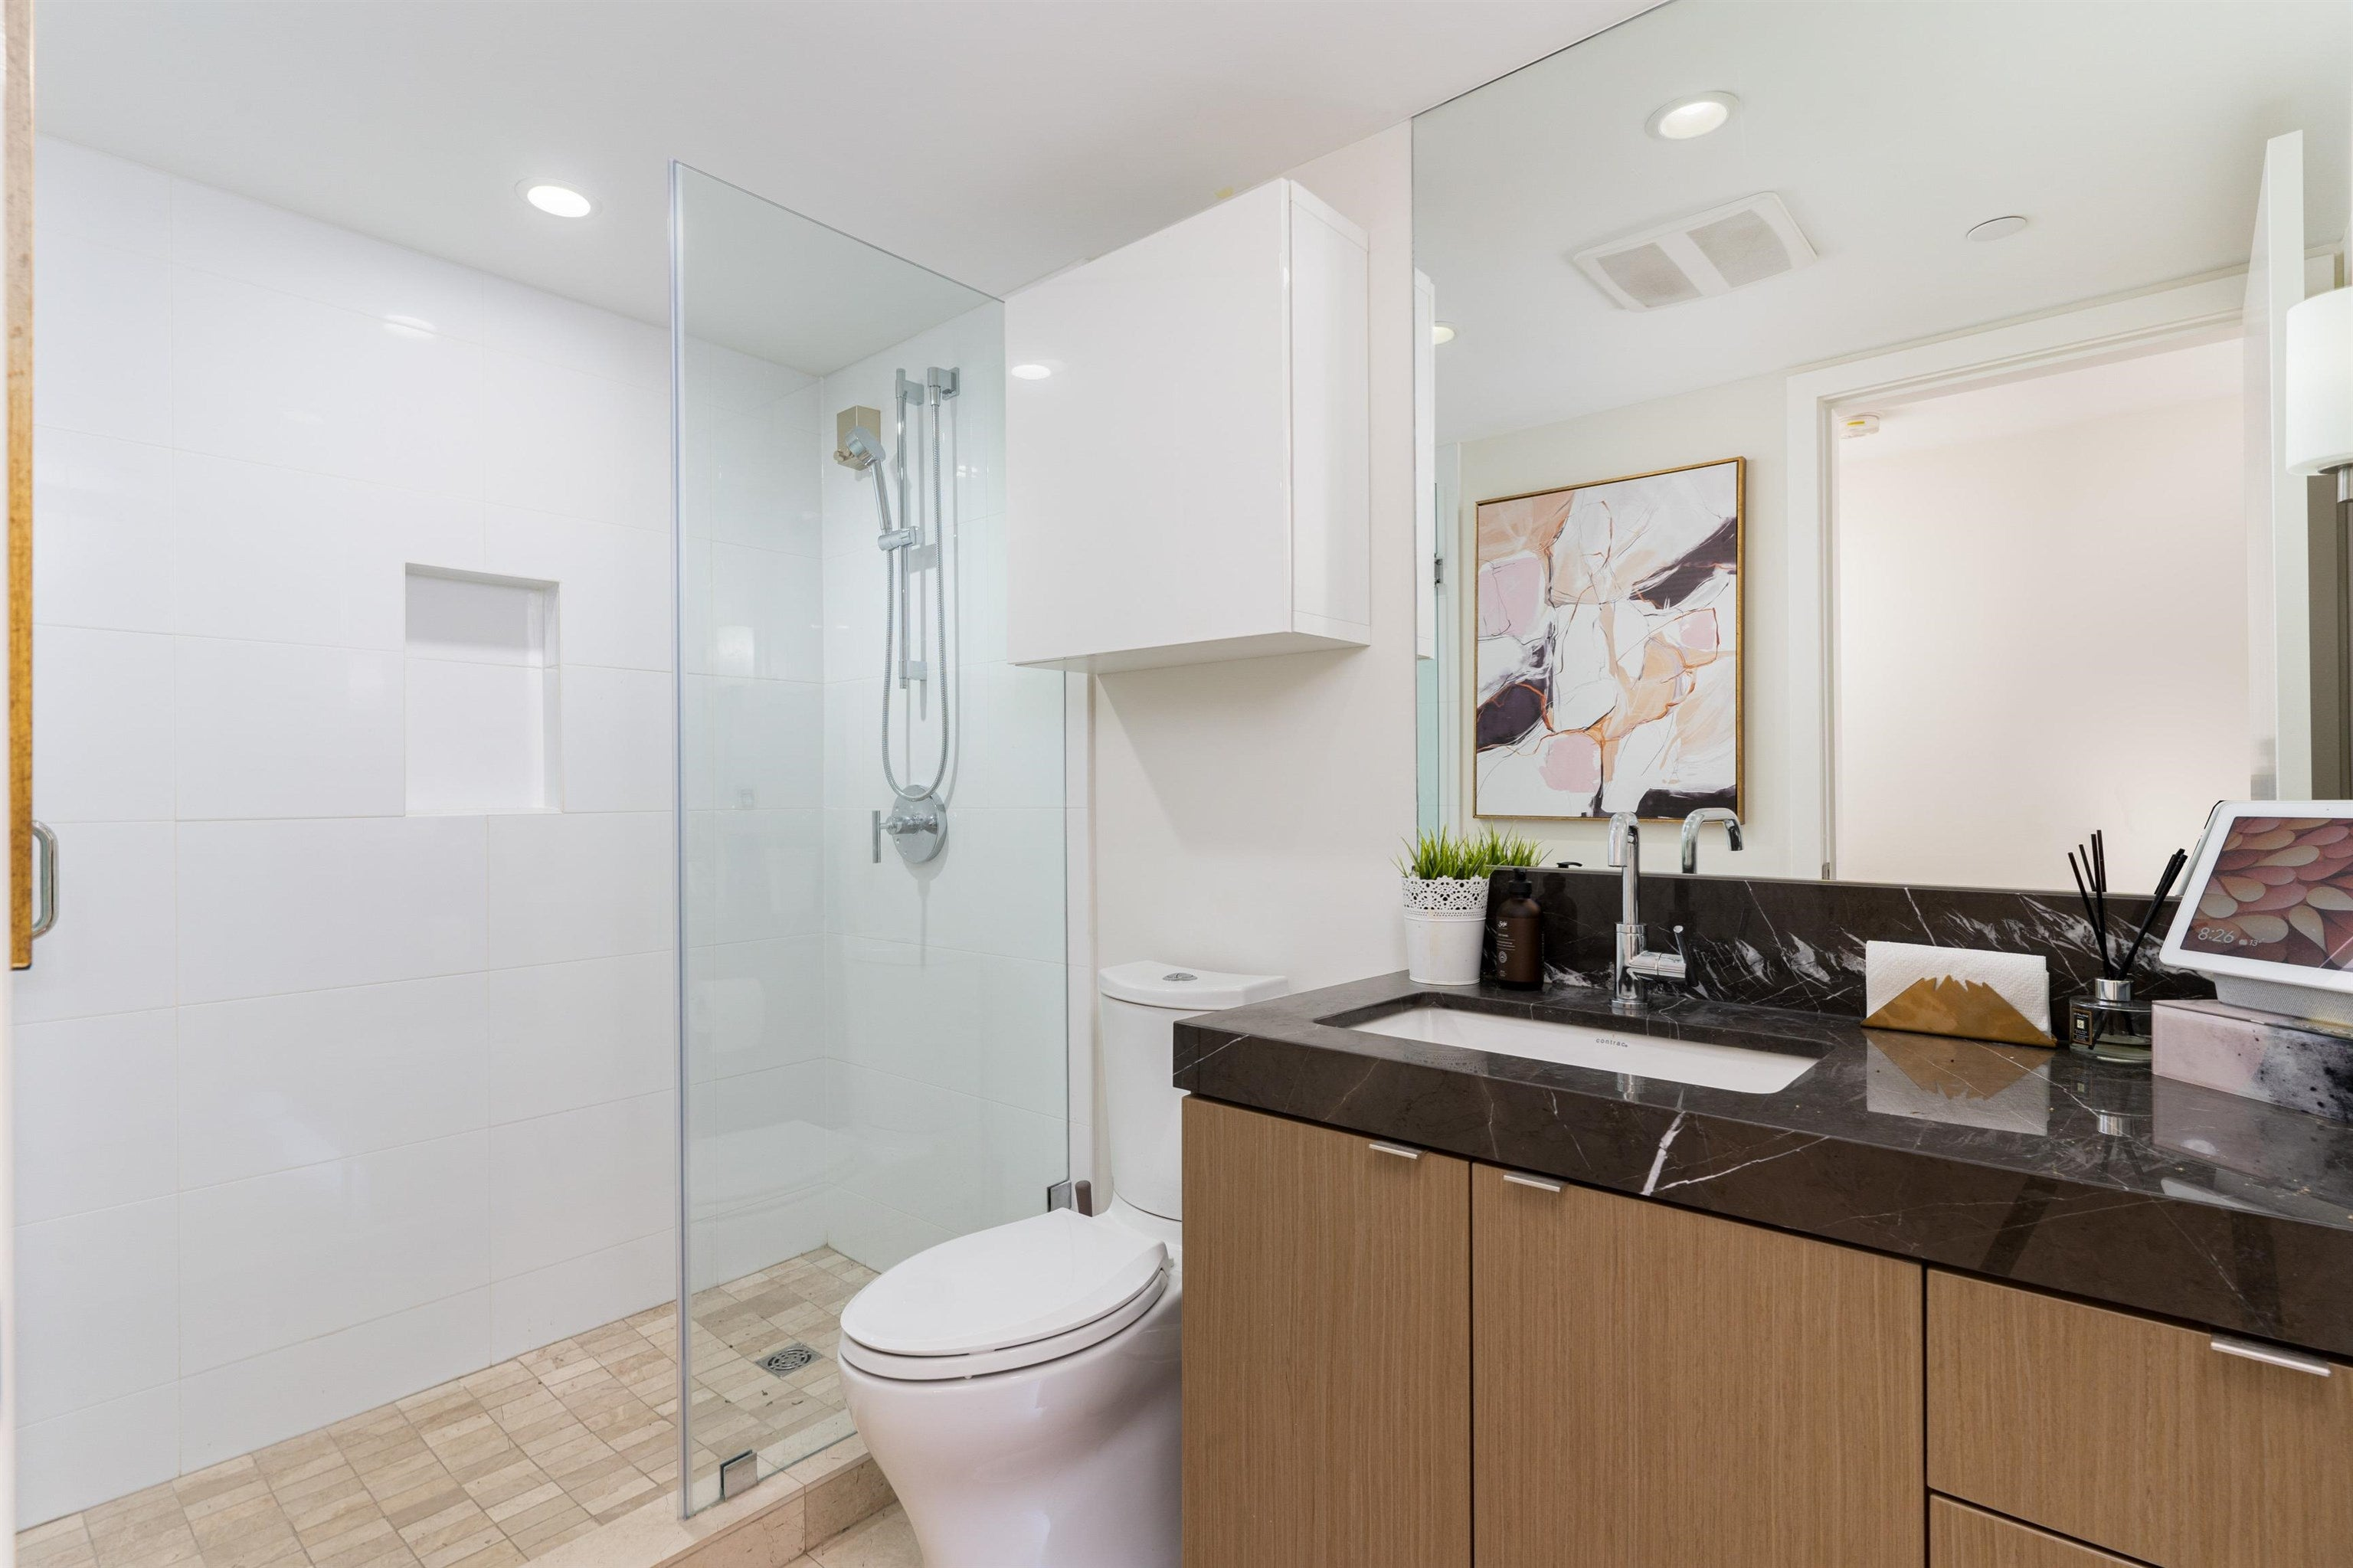 306 112 E 13TH STREET - Central Lonsdale Apartment/Condo for sale, 2 Bedrooms (R2619655) - #22